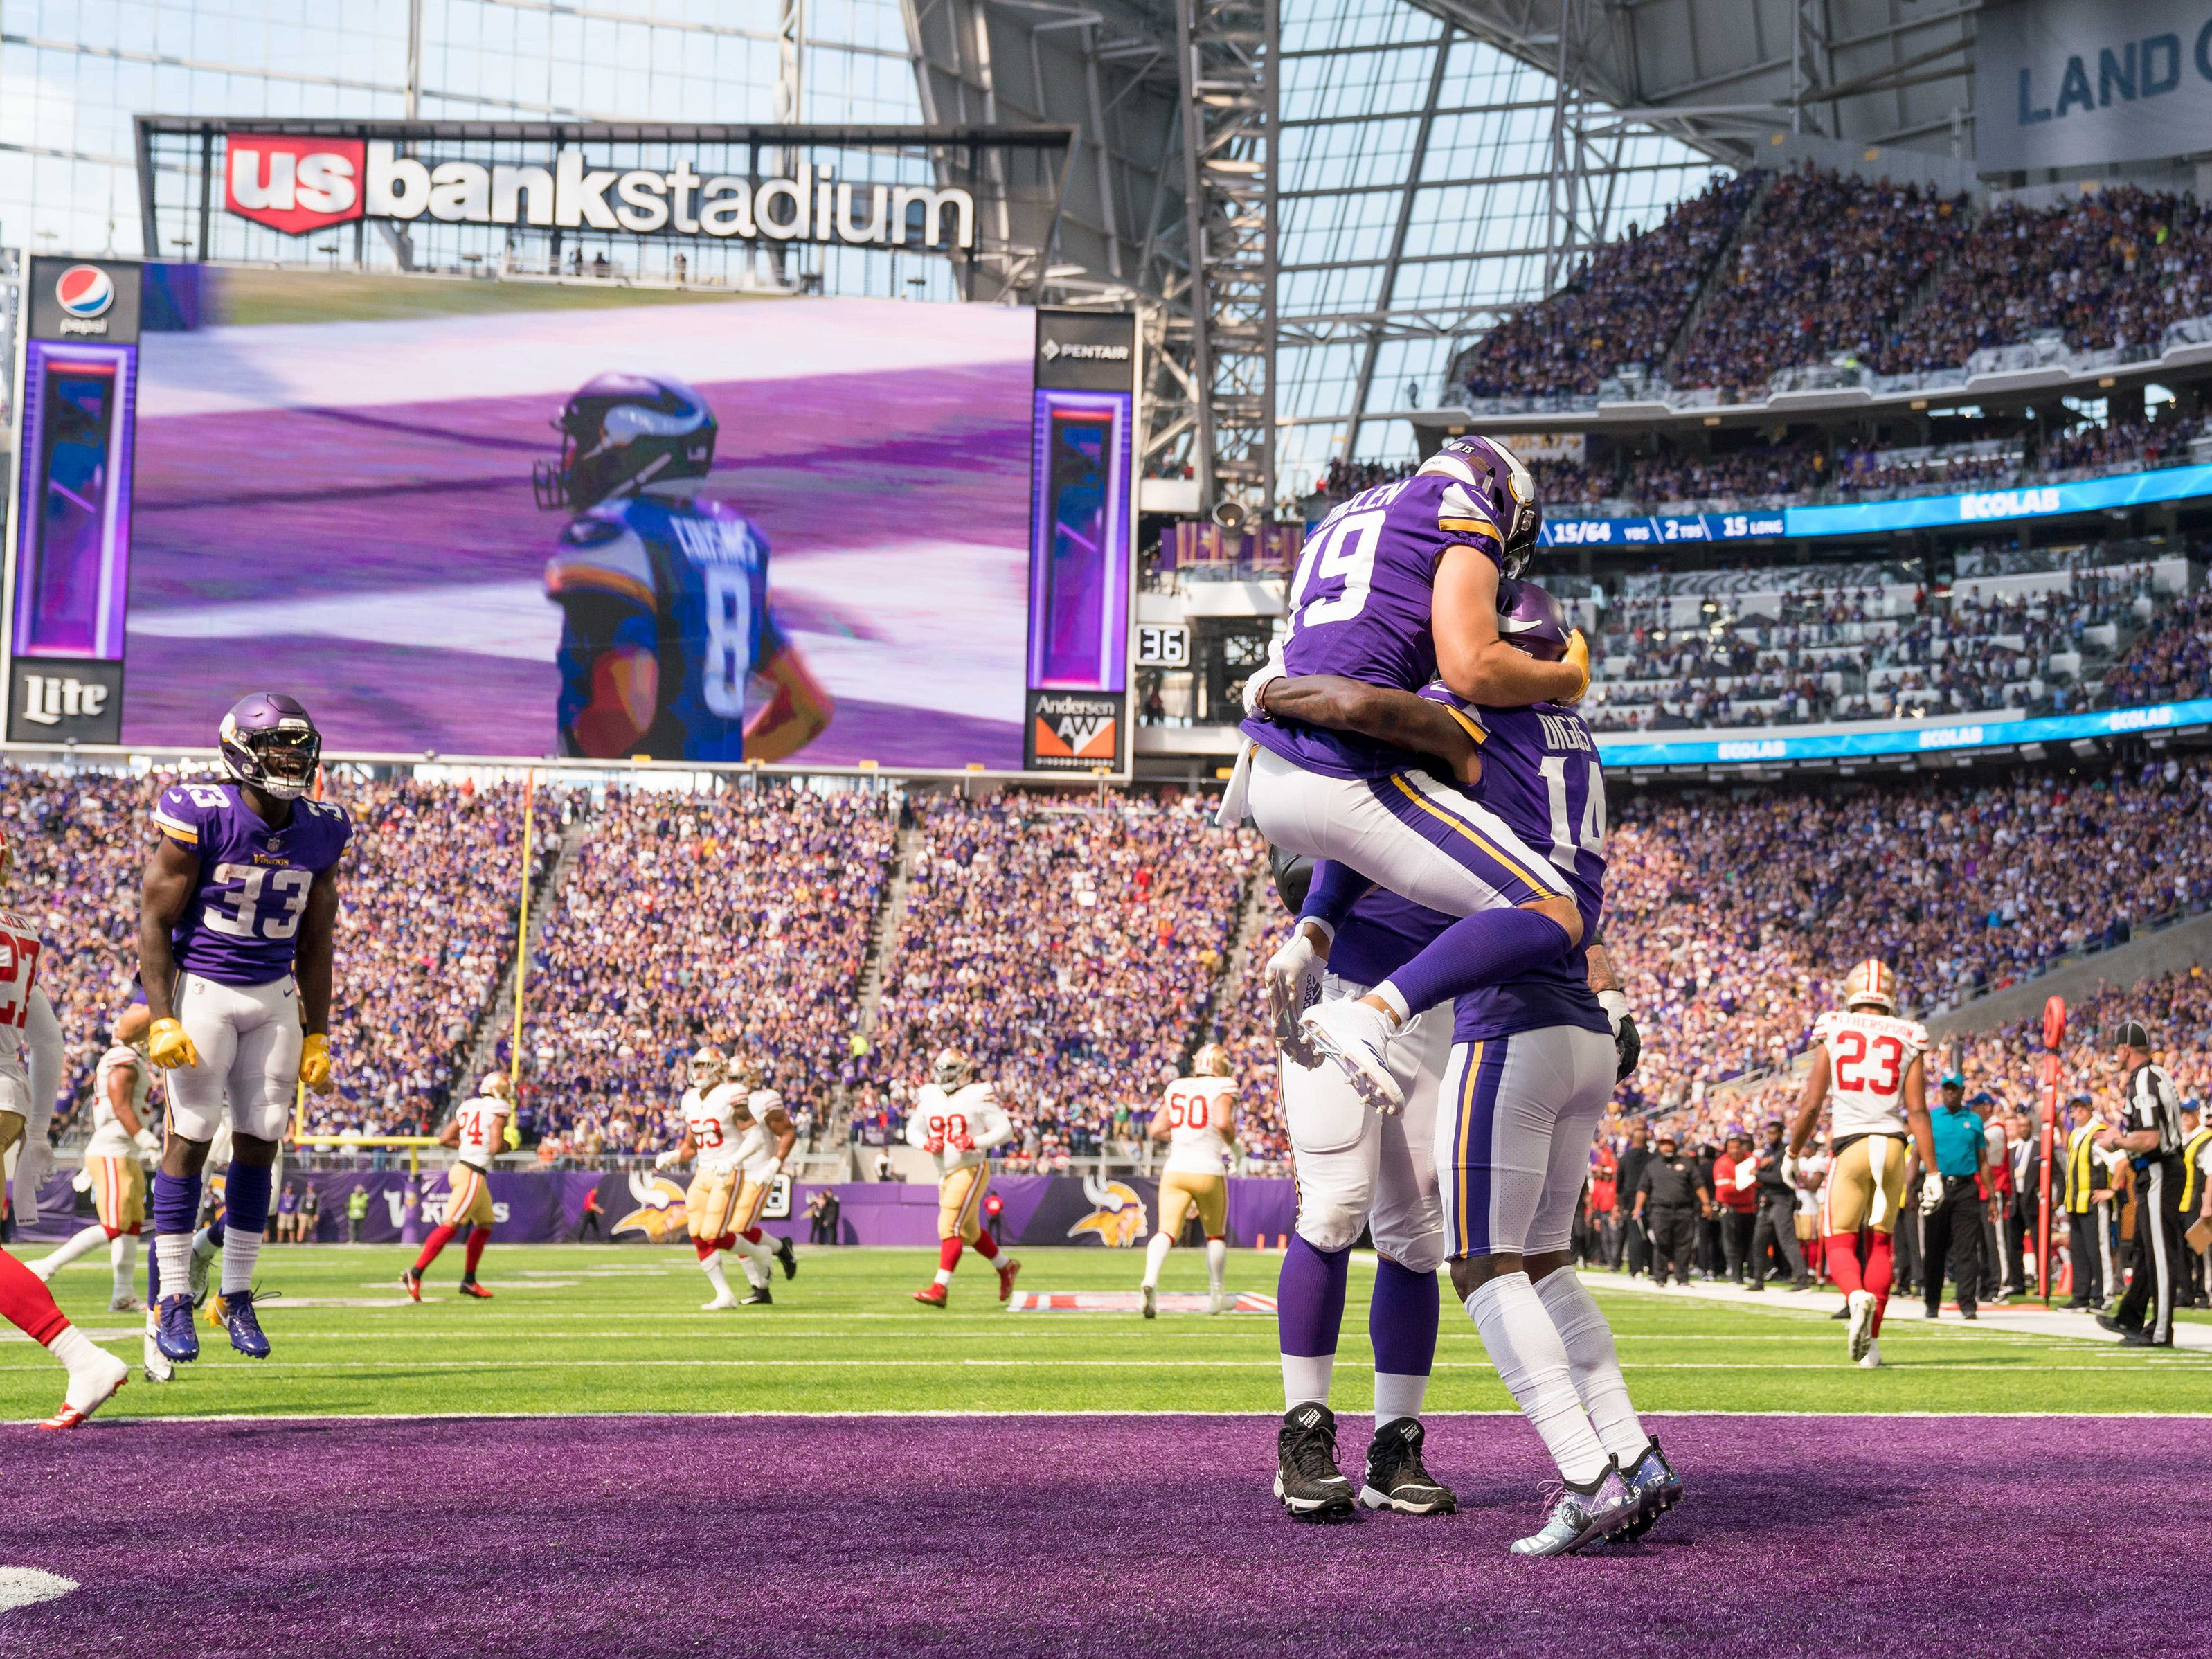 Minnesota Vikings wide receiver Adam Thielen celebrates with wide receiver Stefon Diggs after his touchdown in the second quarter against San Francisco 49ers at U.S. Bank Stadium.